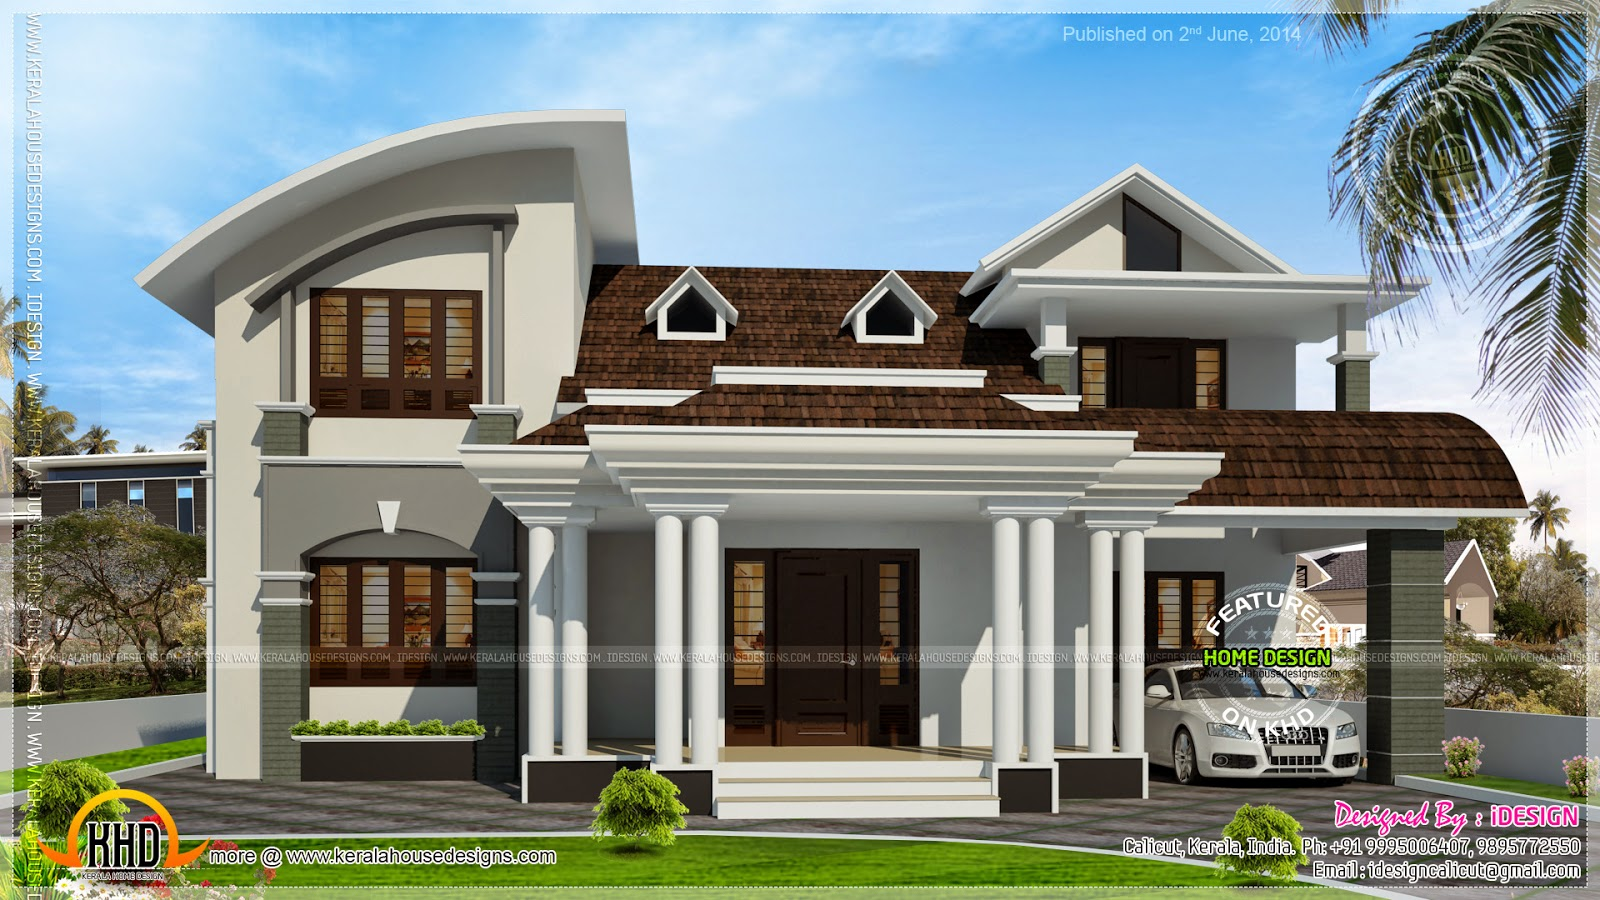 House with beautiful dormer windows - Kerala home design ...